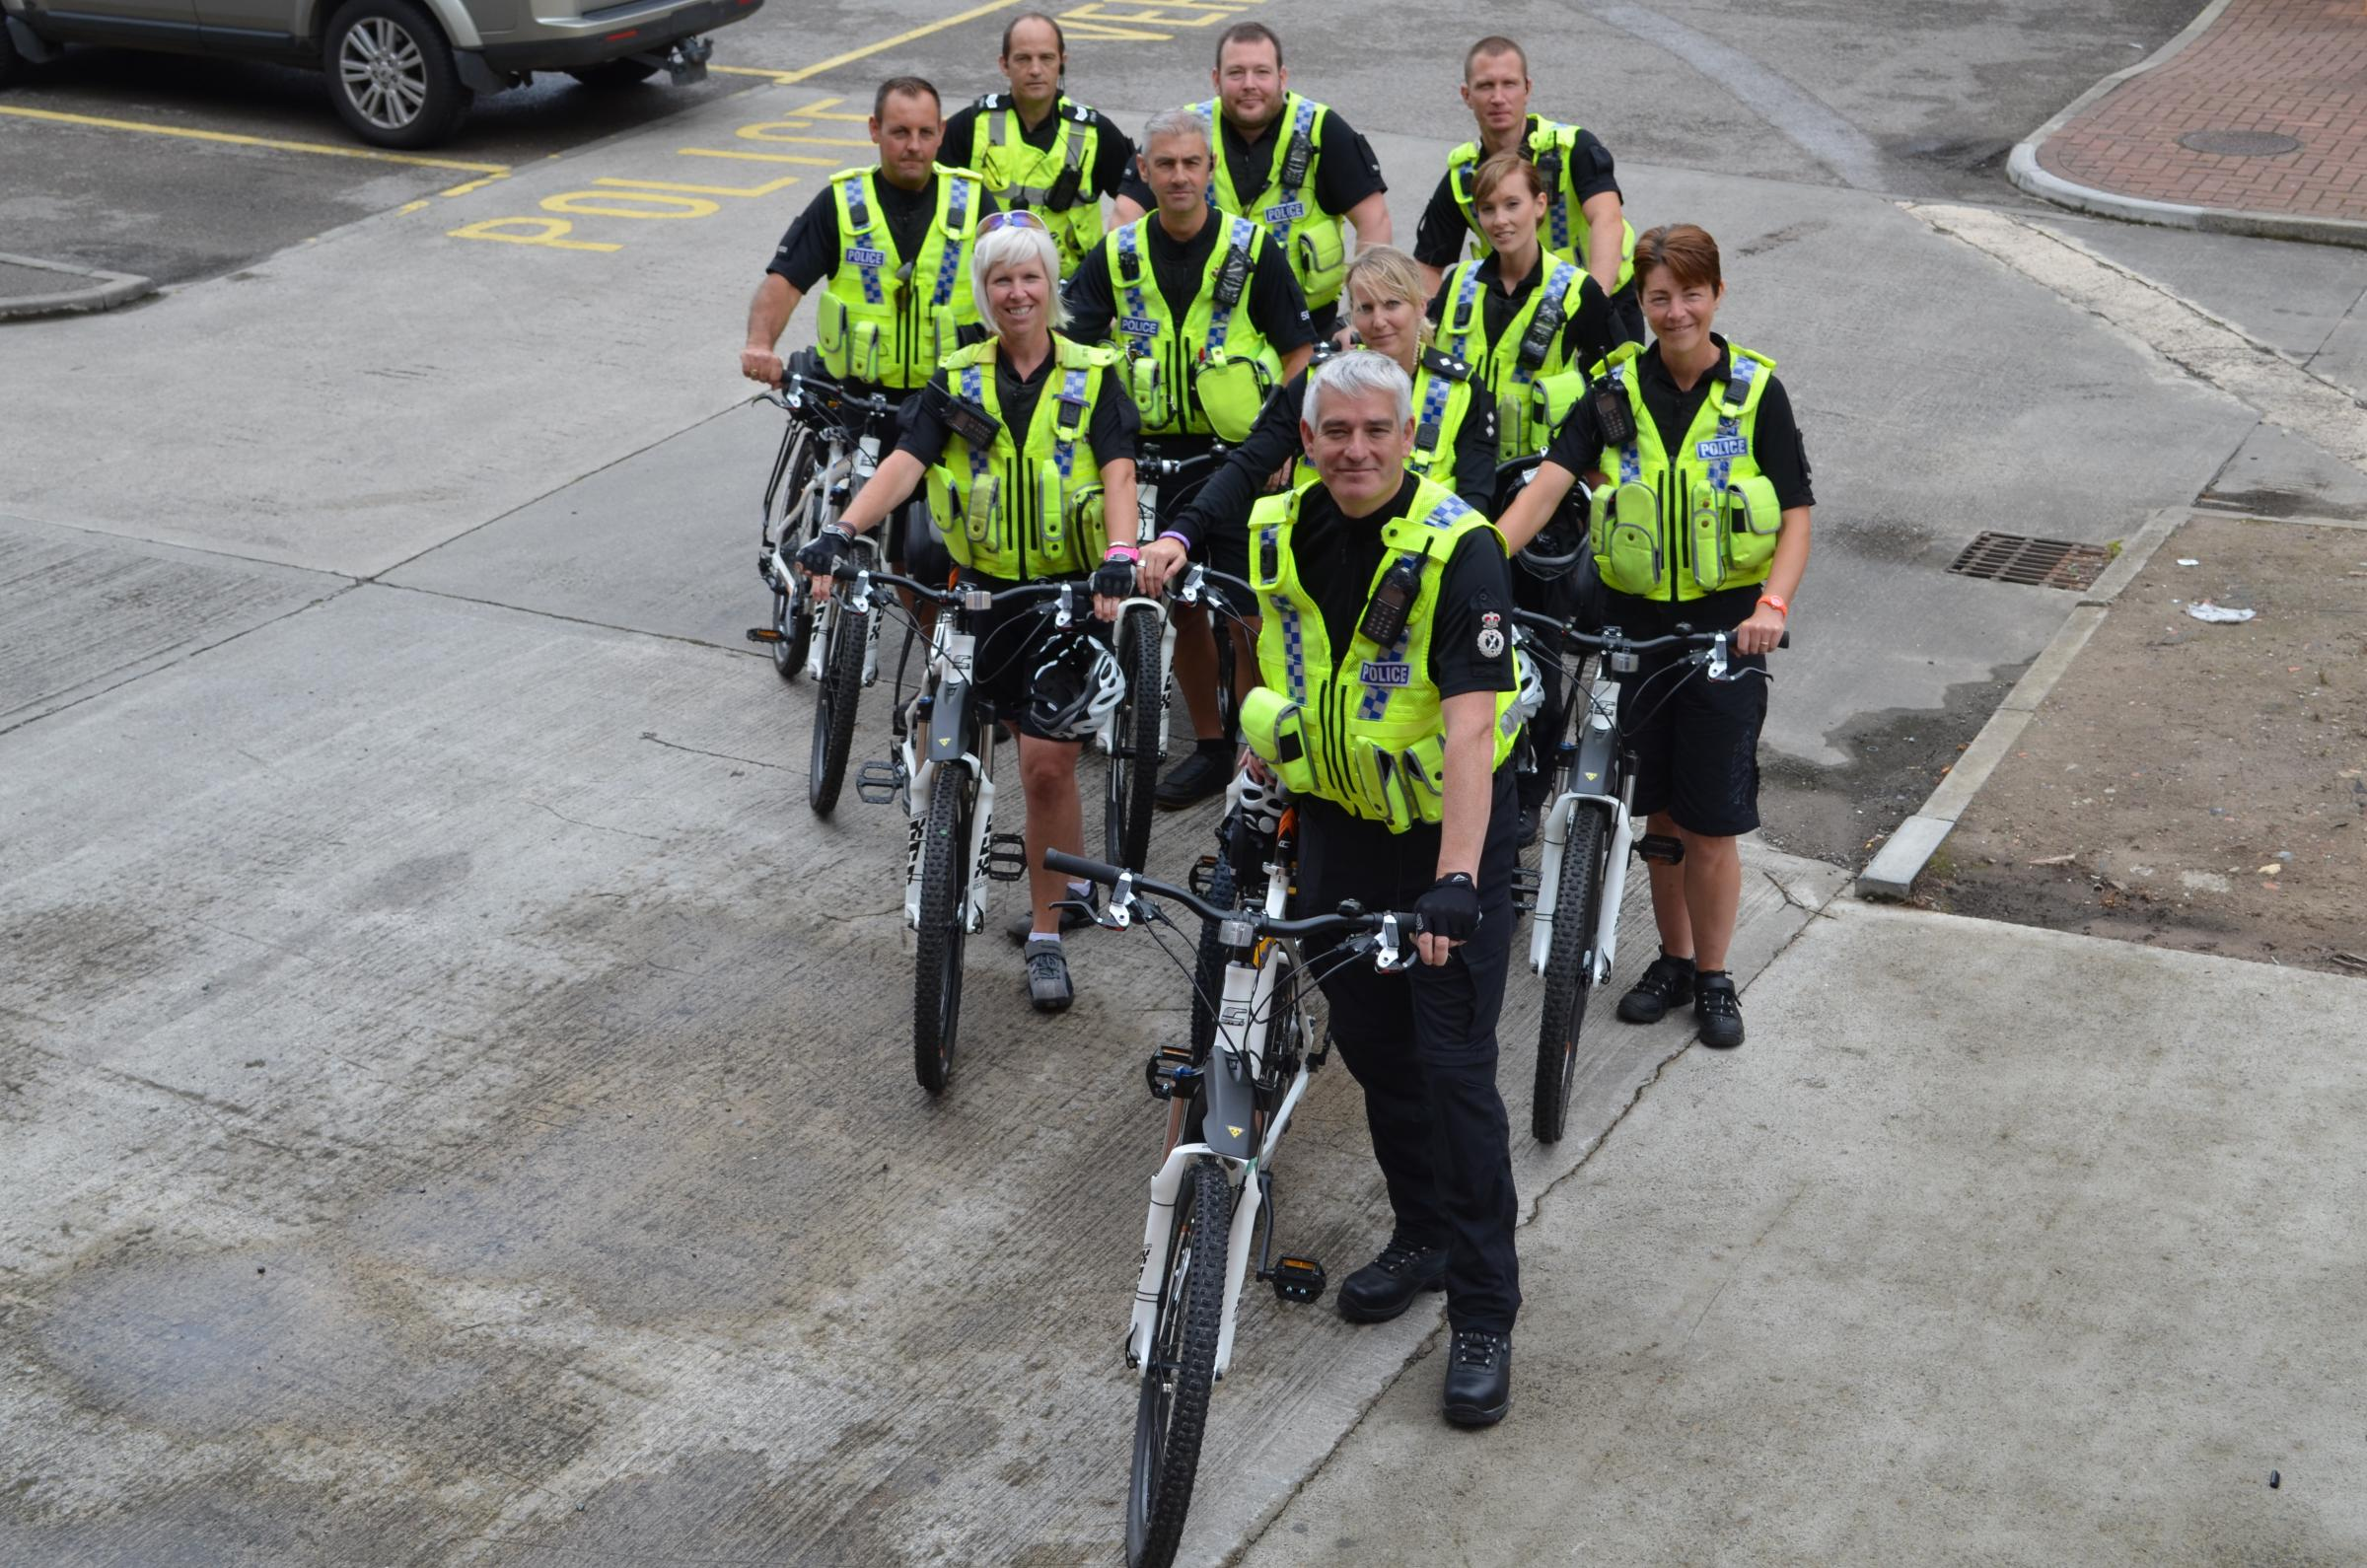 SADDLING UP: Chief Constable Dave Jones with the Cycle Response Team.